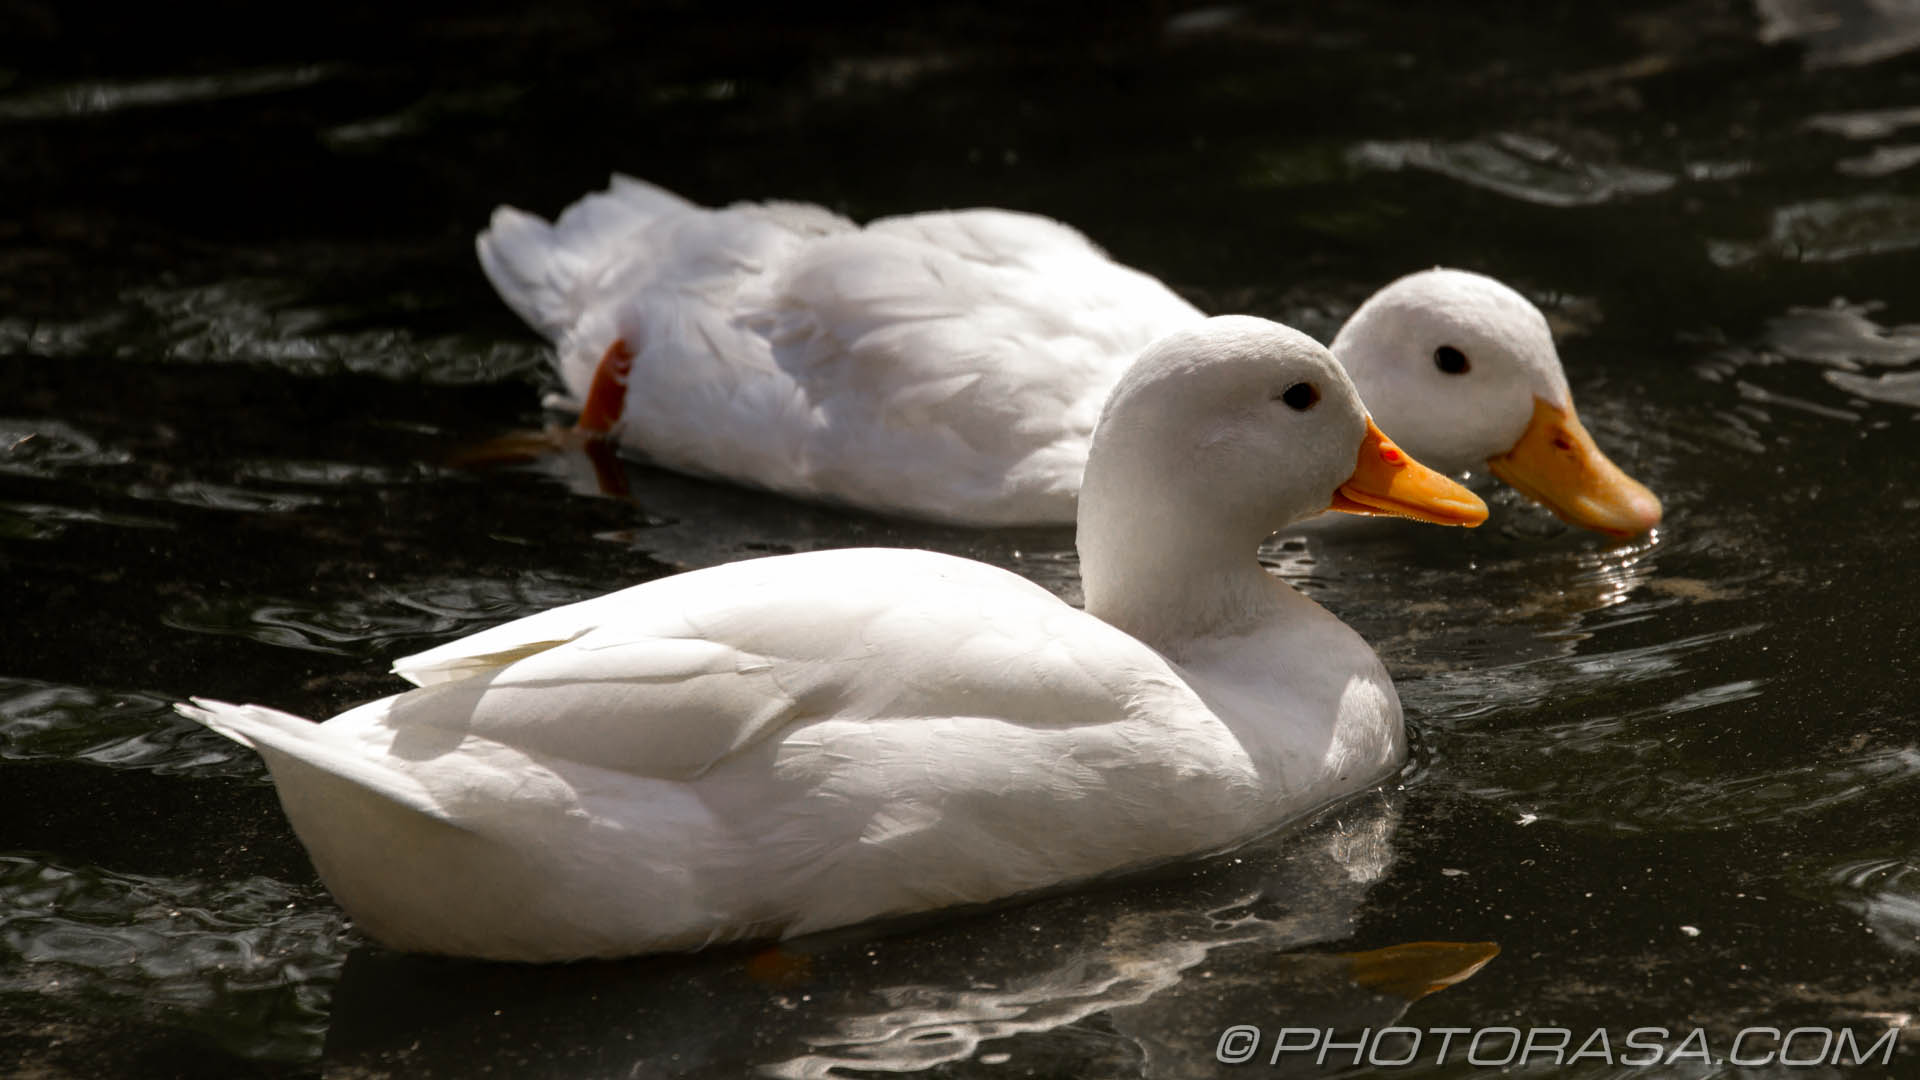 http://photorasa.com/birds-greenworld/two-white-ducks-looking-for-food/